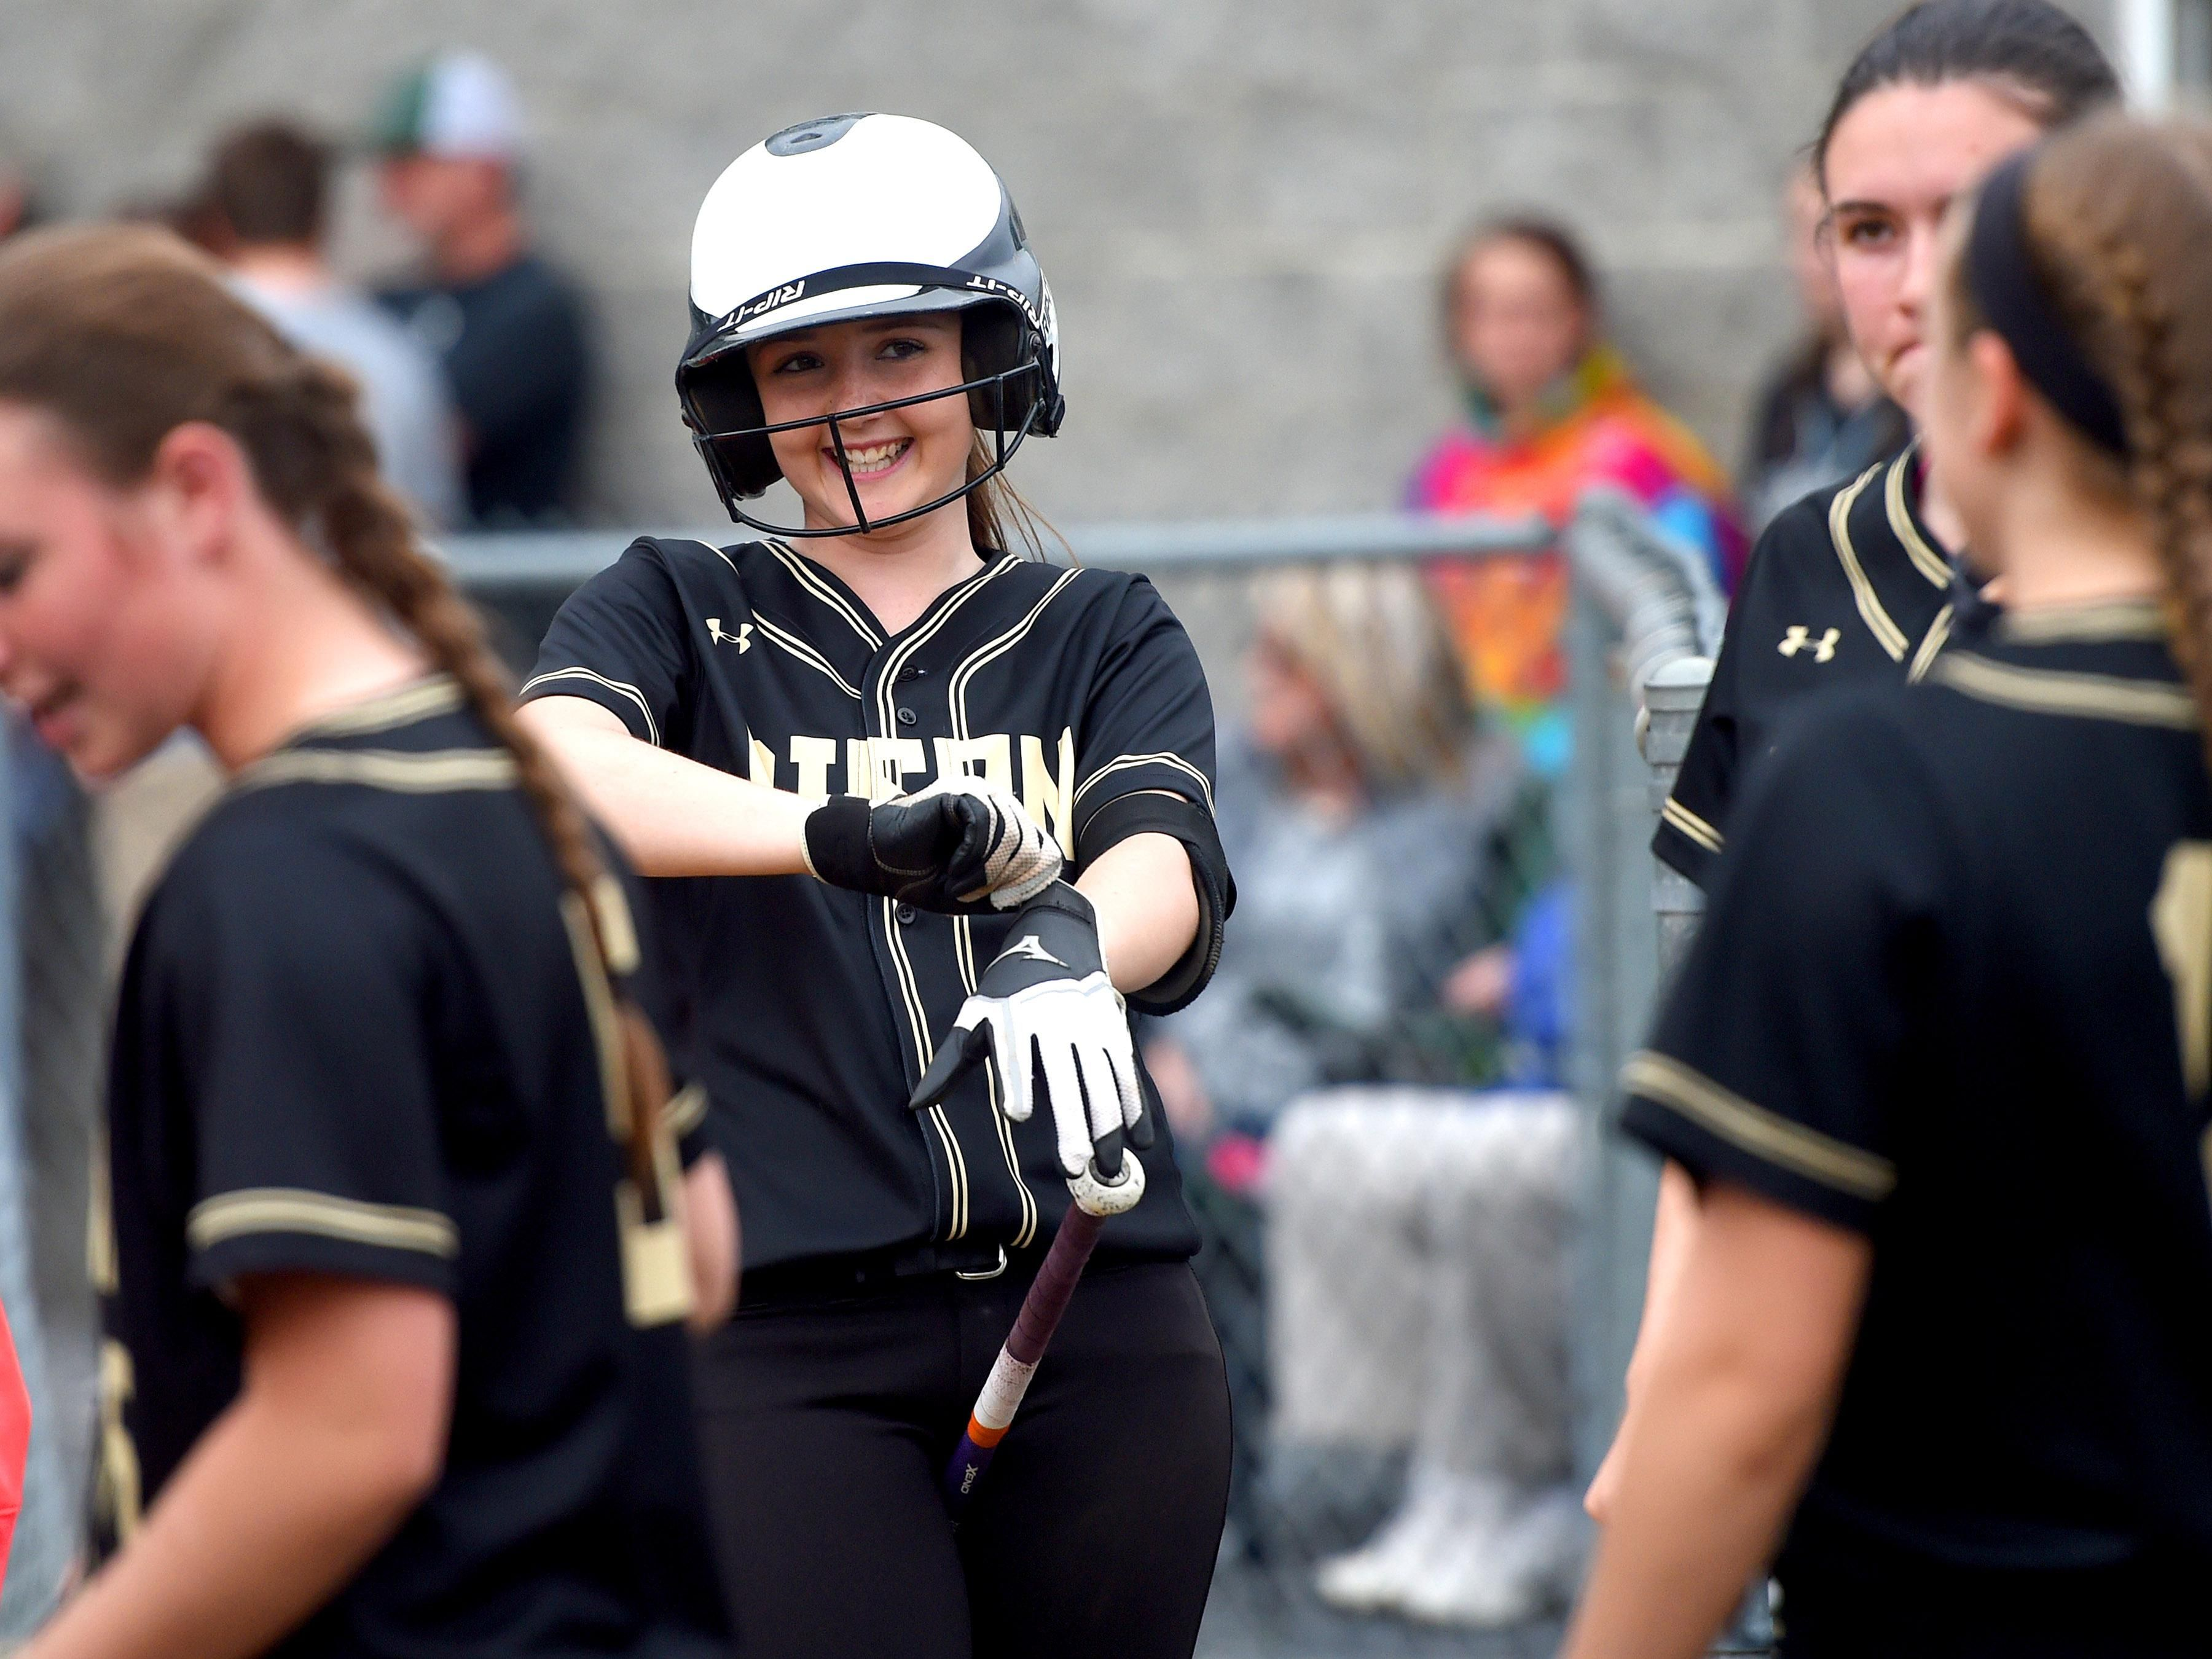 Buffalo Gap's Autumn Stokes smiles as she slips on her batter's gloves at the start of the third inning during a softball game played in Fishersville on Friday, April 1, 2016.